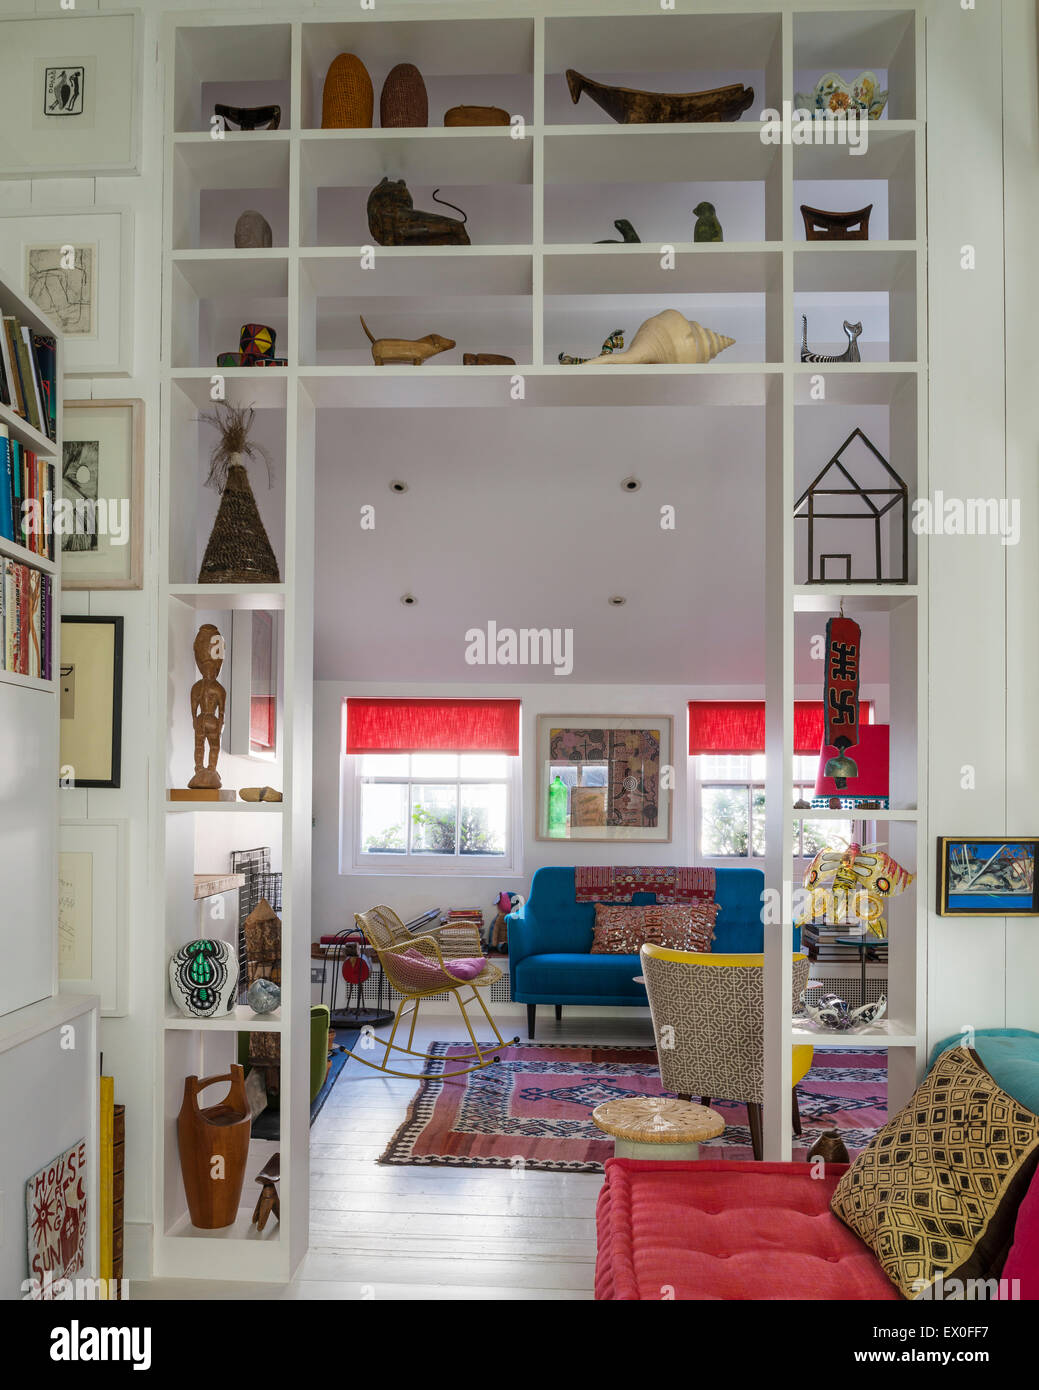 Small Sculptures And Artefacts On Open Shelving In Living Room With Bold Coloured Furniture Kilim